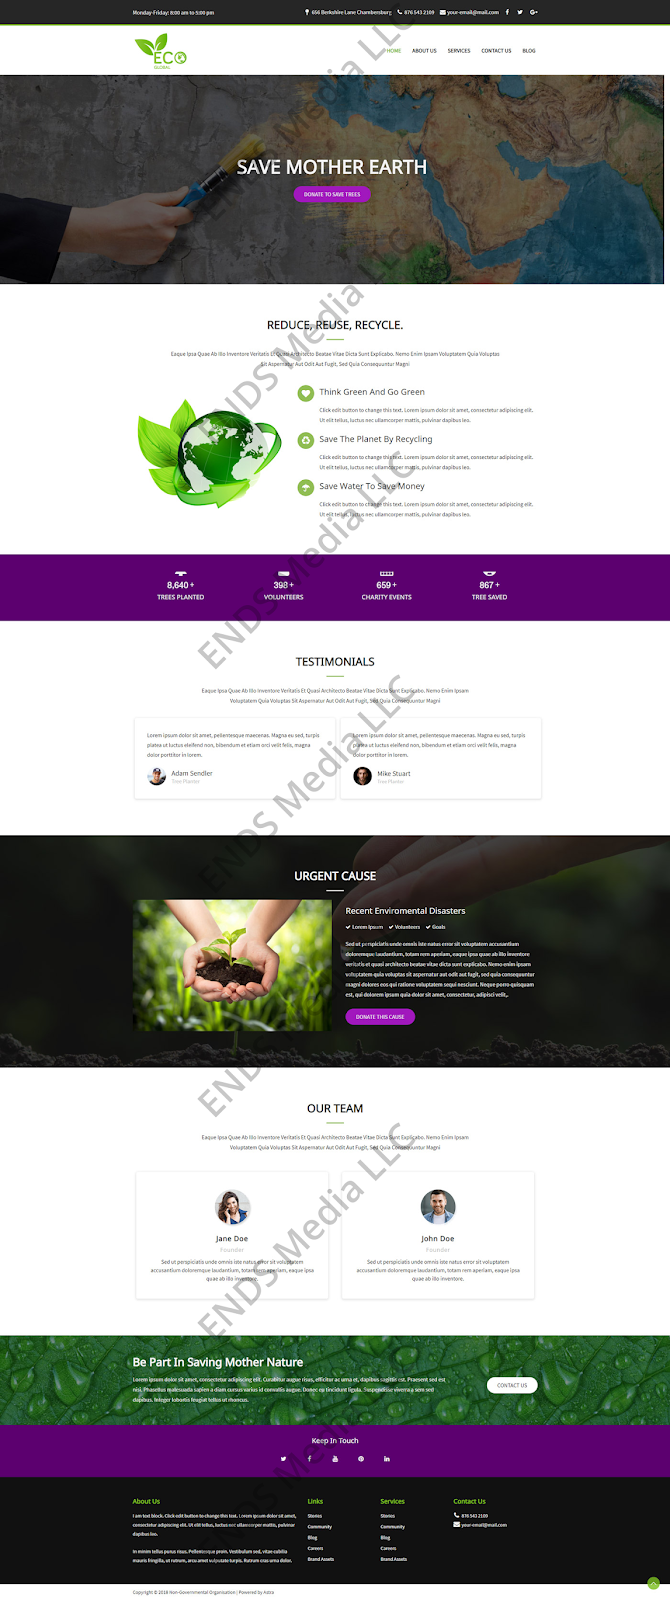 ENDS Media Web Design Portfolio for Goverment, Non-Profit, an Community Website